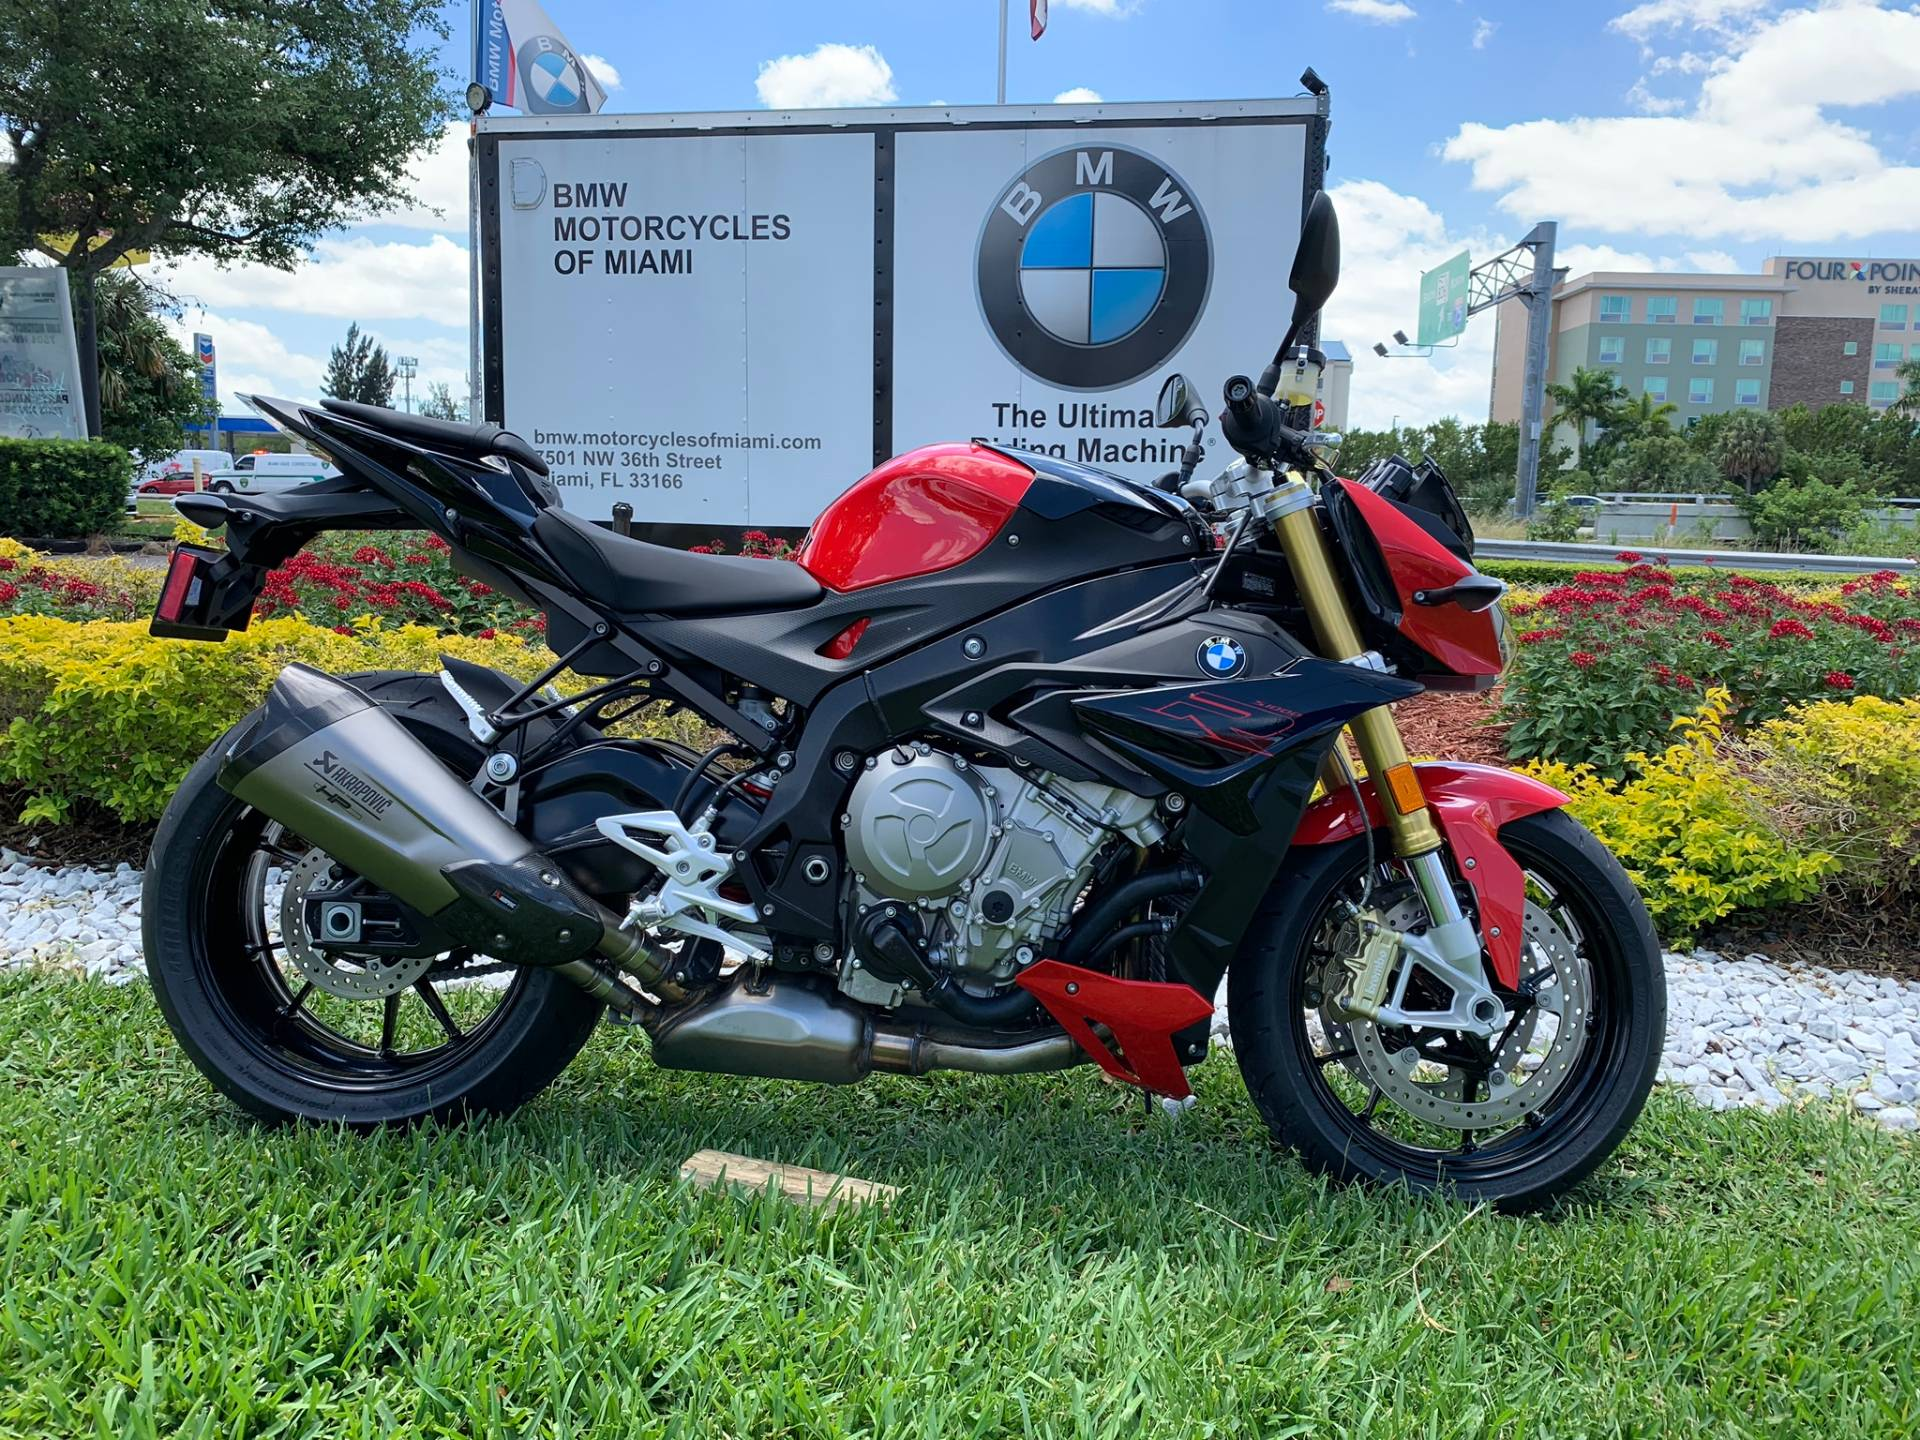 New 2019 BMW S 1000 R for sale, BMW S 1000R for sale, BMW Motorcycle S1000R, new BMW R, Sport, roadster, naked. BMW Motorcycles of Miami, Motorcycles of Miami, Motorcycles Miami, New Motorcycles, Used Motorcycles, pre-owned. #BMWMotorcyclesOfMiami #MotorcyclesOfMiami #MotorcyclesMiami - Photo 20